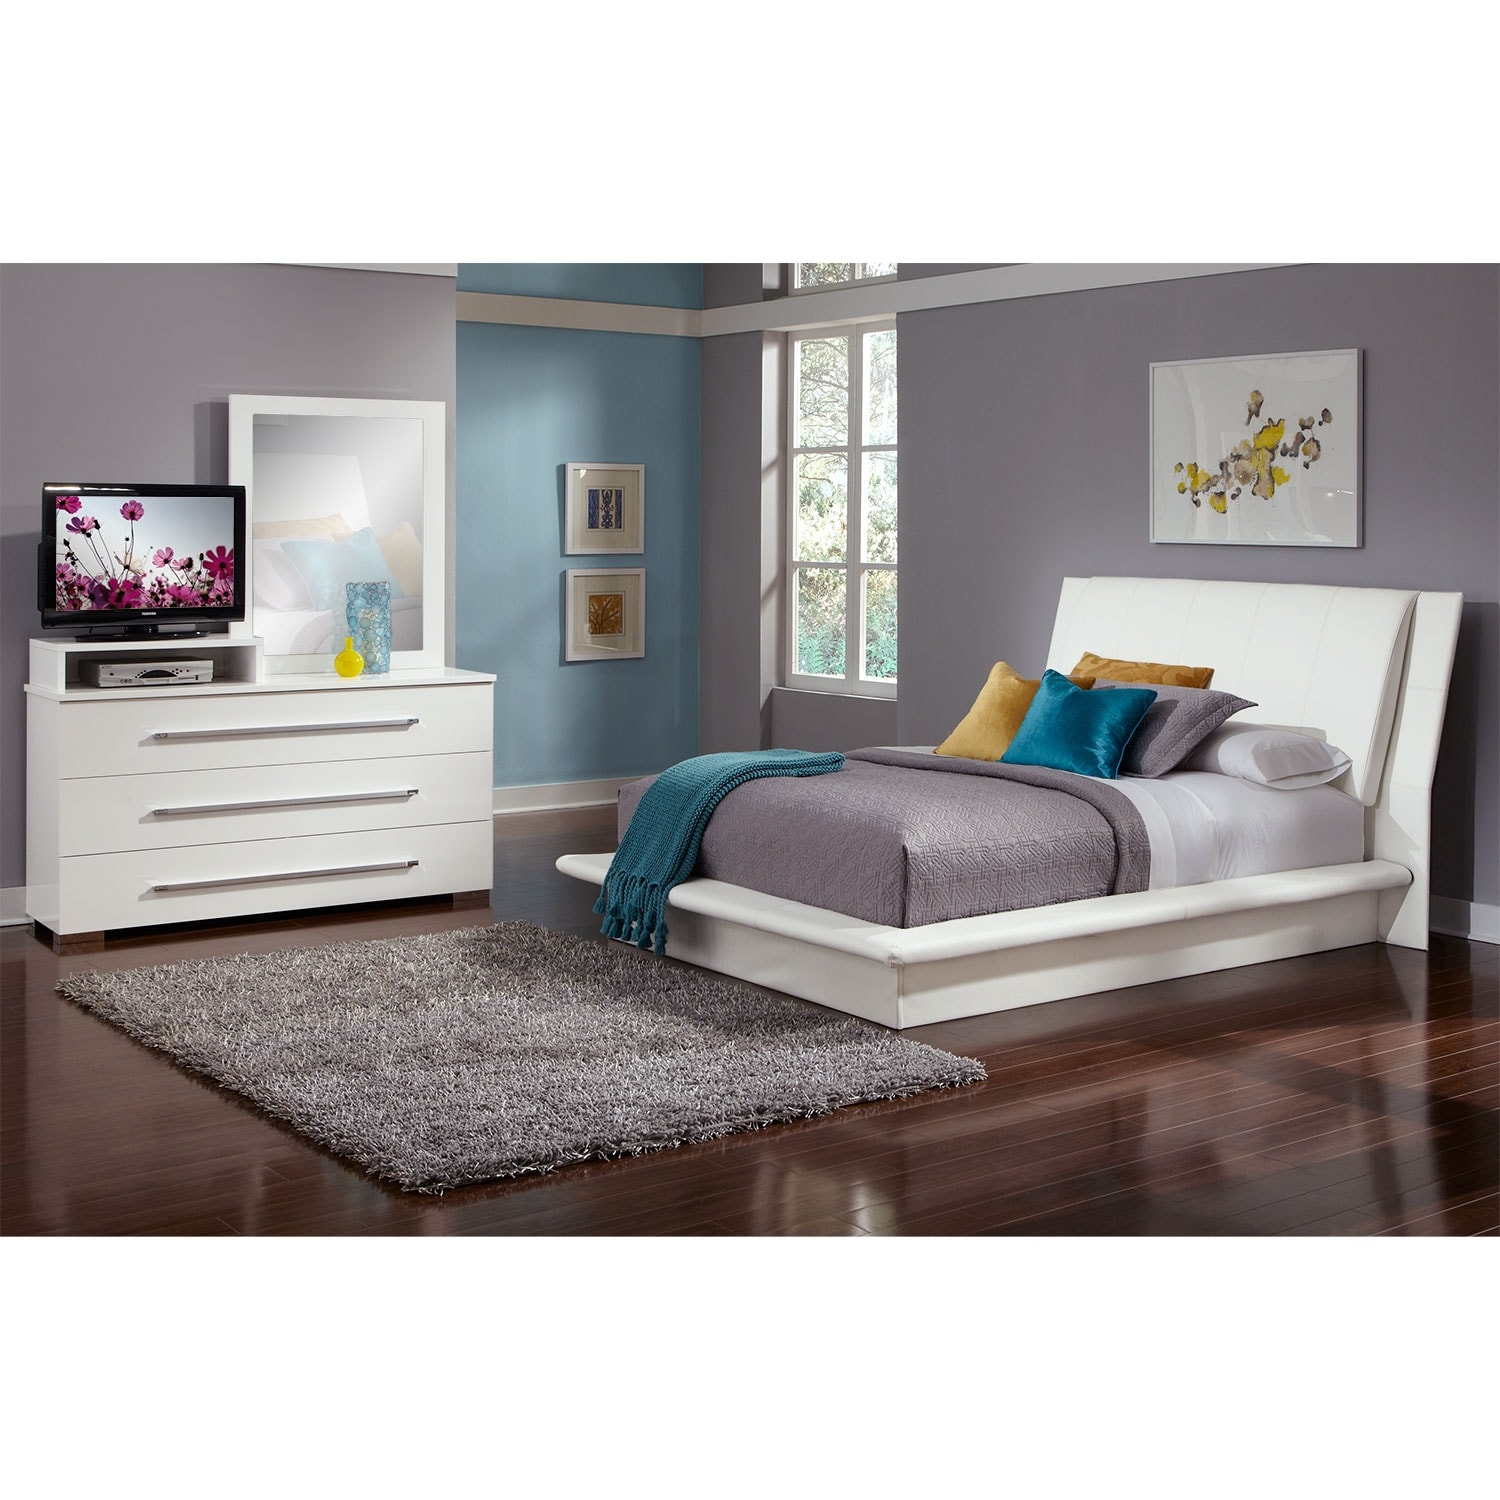 Dimora 5-Piece King Upholstered Bedroom Set with Media Dresser - White